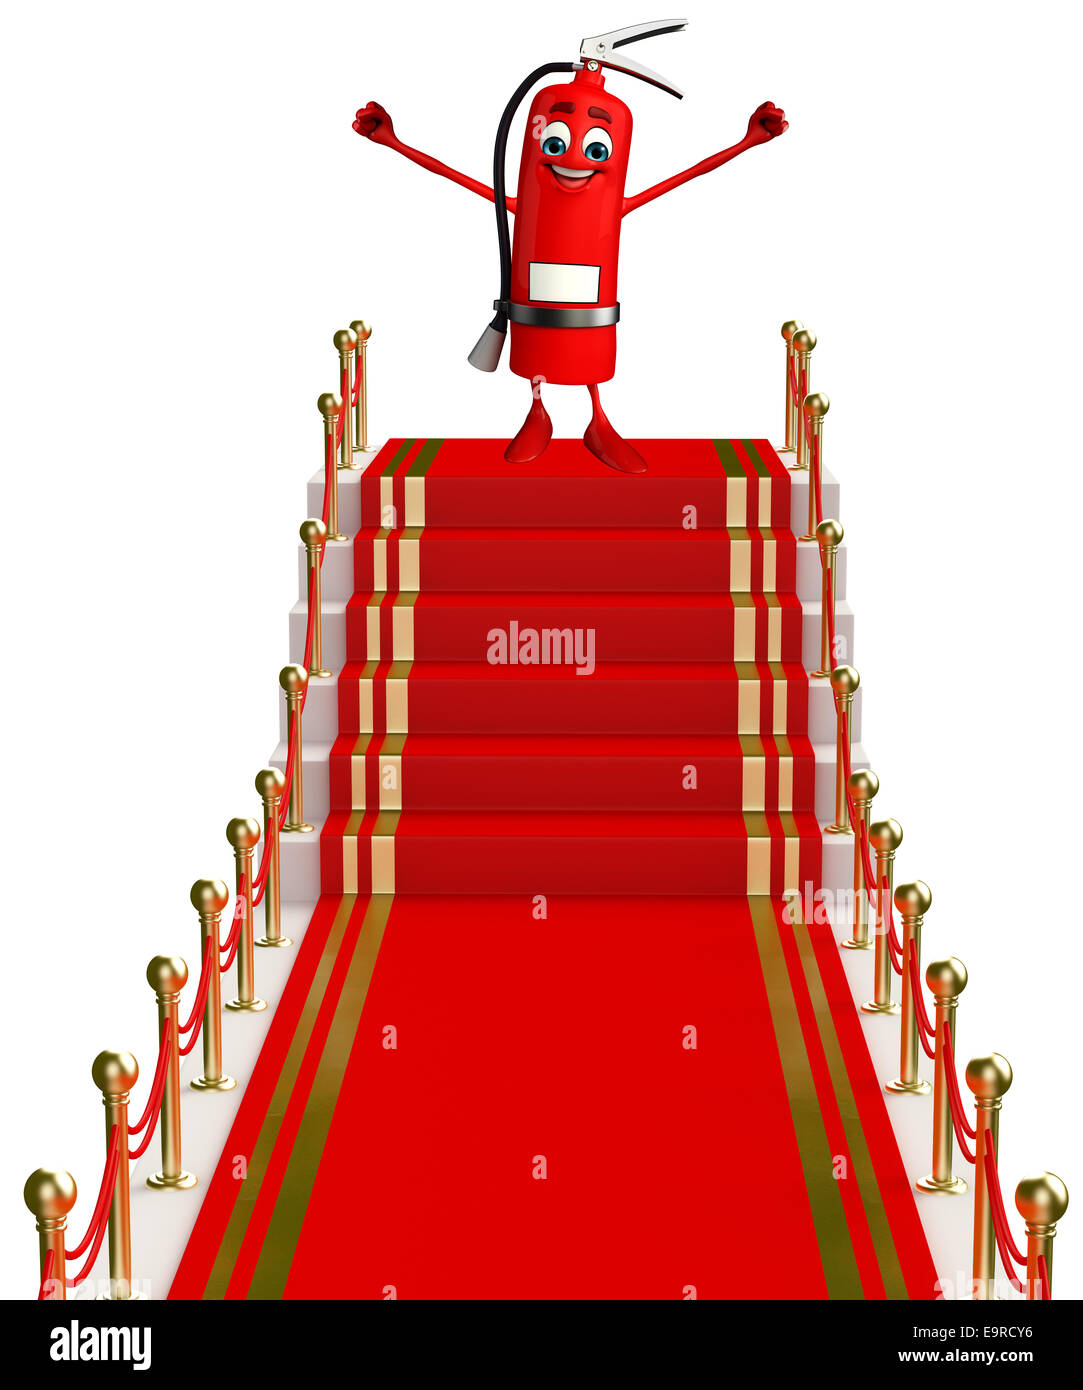 Cartoon Character Of Fire Extinguisher With Red Carpet Stock Photo Alamy